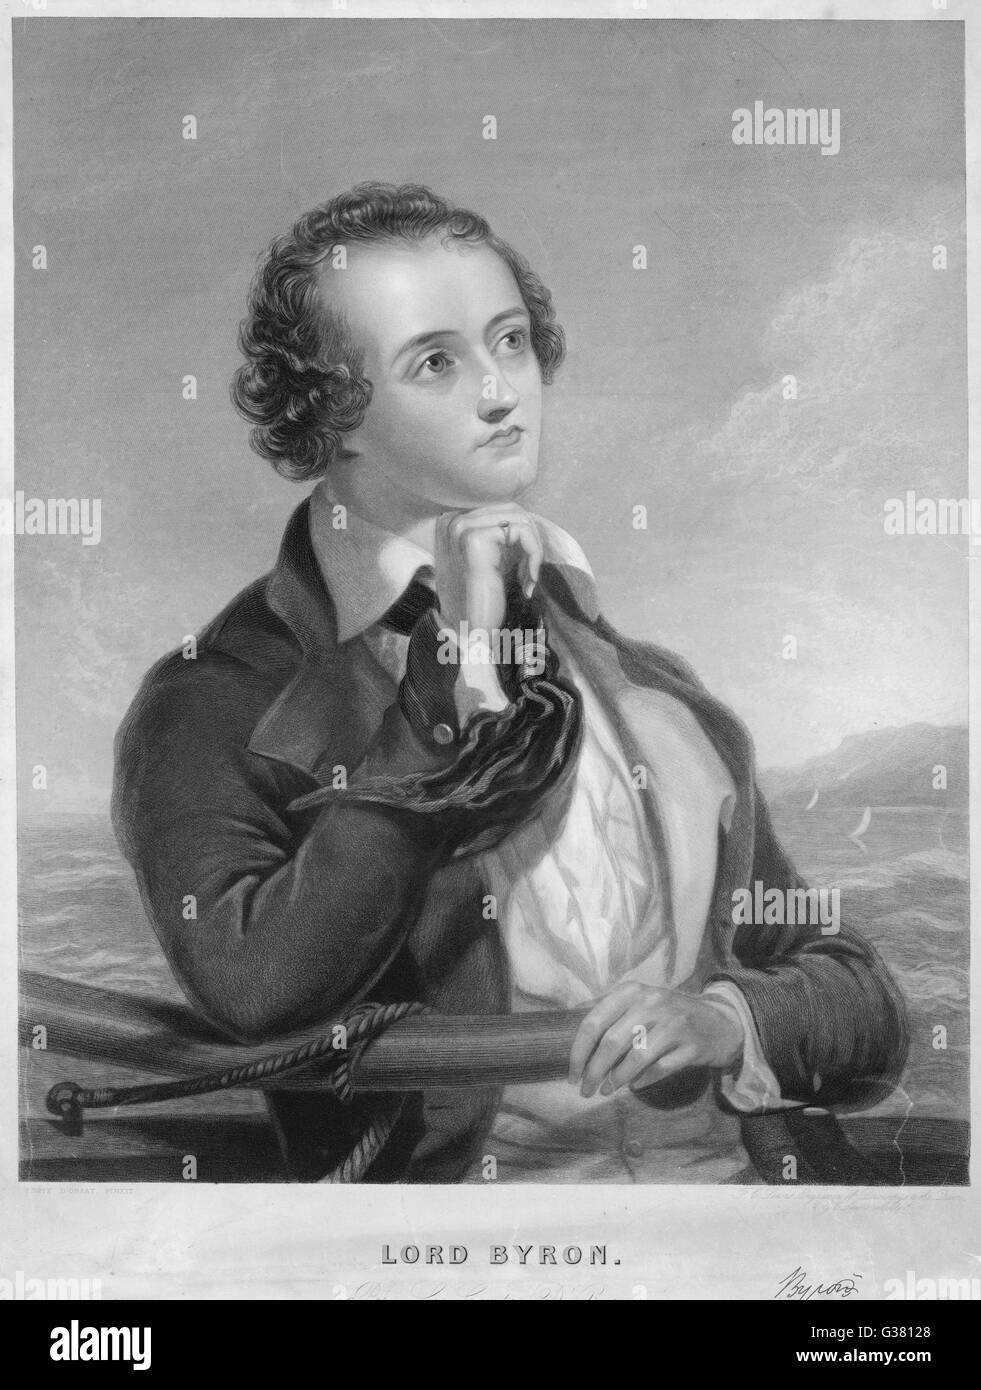 In a thoughtful pose with the  sea in the background         Date: 1788-1824 - Stock Image